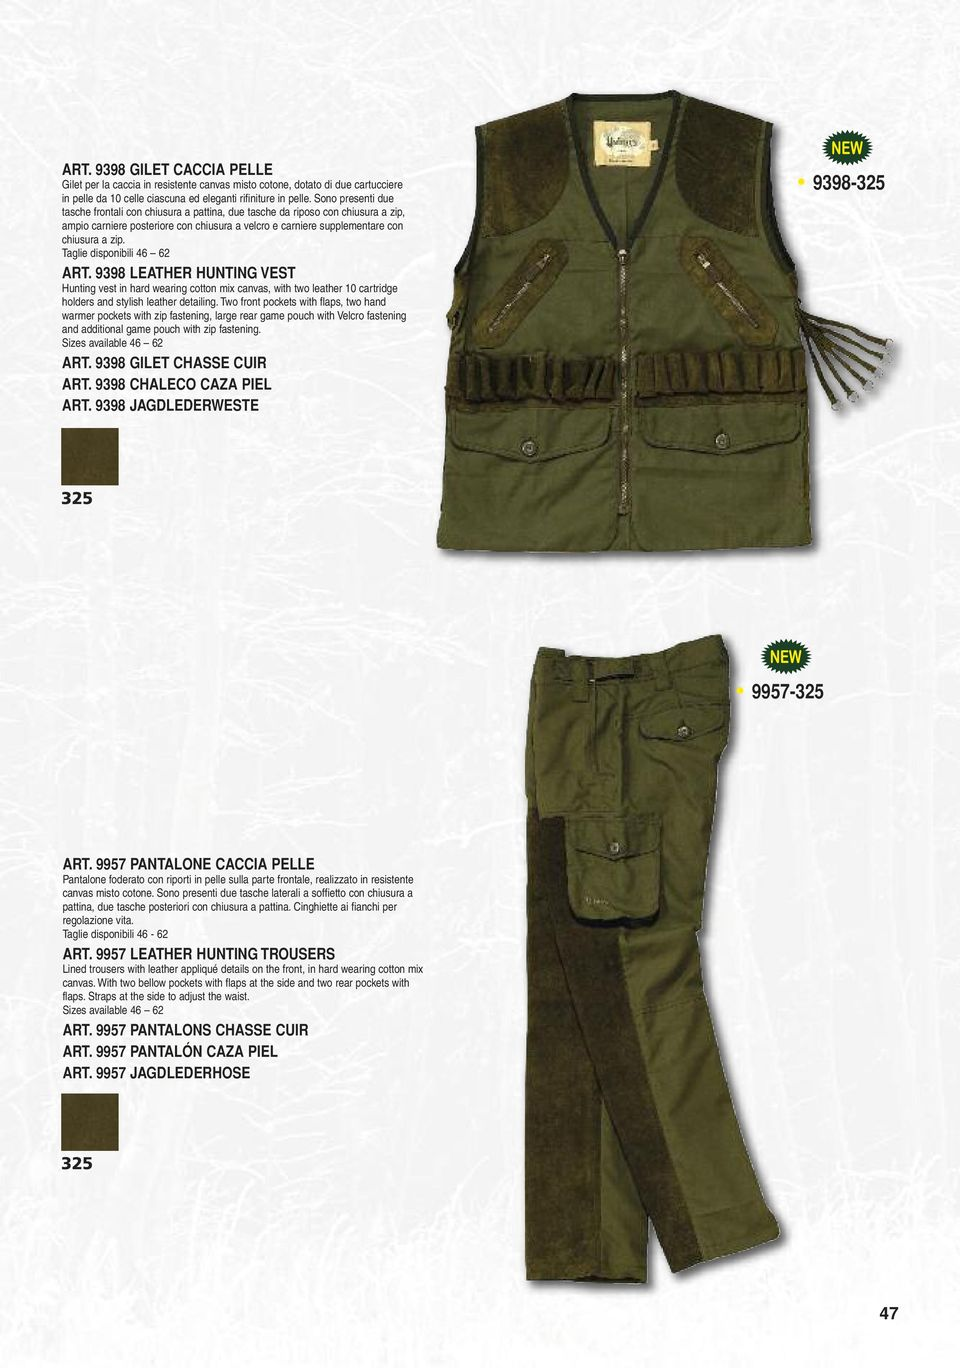 Taglie disponibili 46 62 ART. 9398 LEATHER HUNTING VEST Hunting vest in hard wearing cotton mix canvas, with two leather 10 cartridge holders and stylish leather detailing.